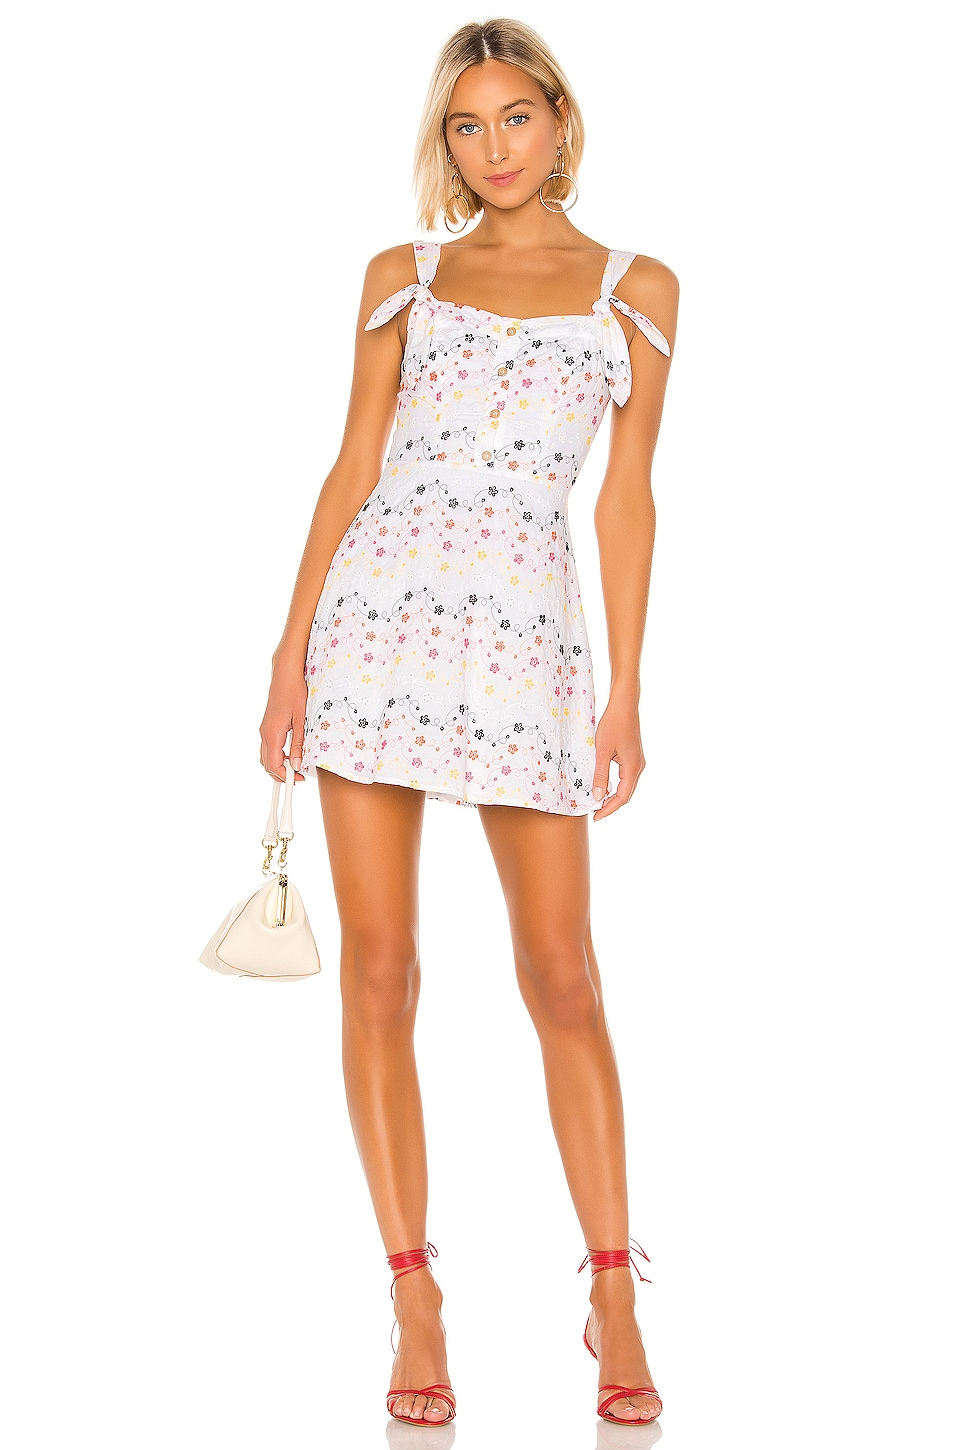 Tularosa Katalina Dress in White